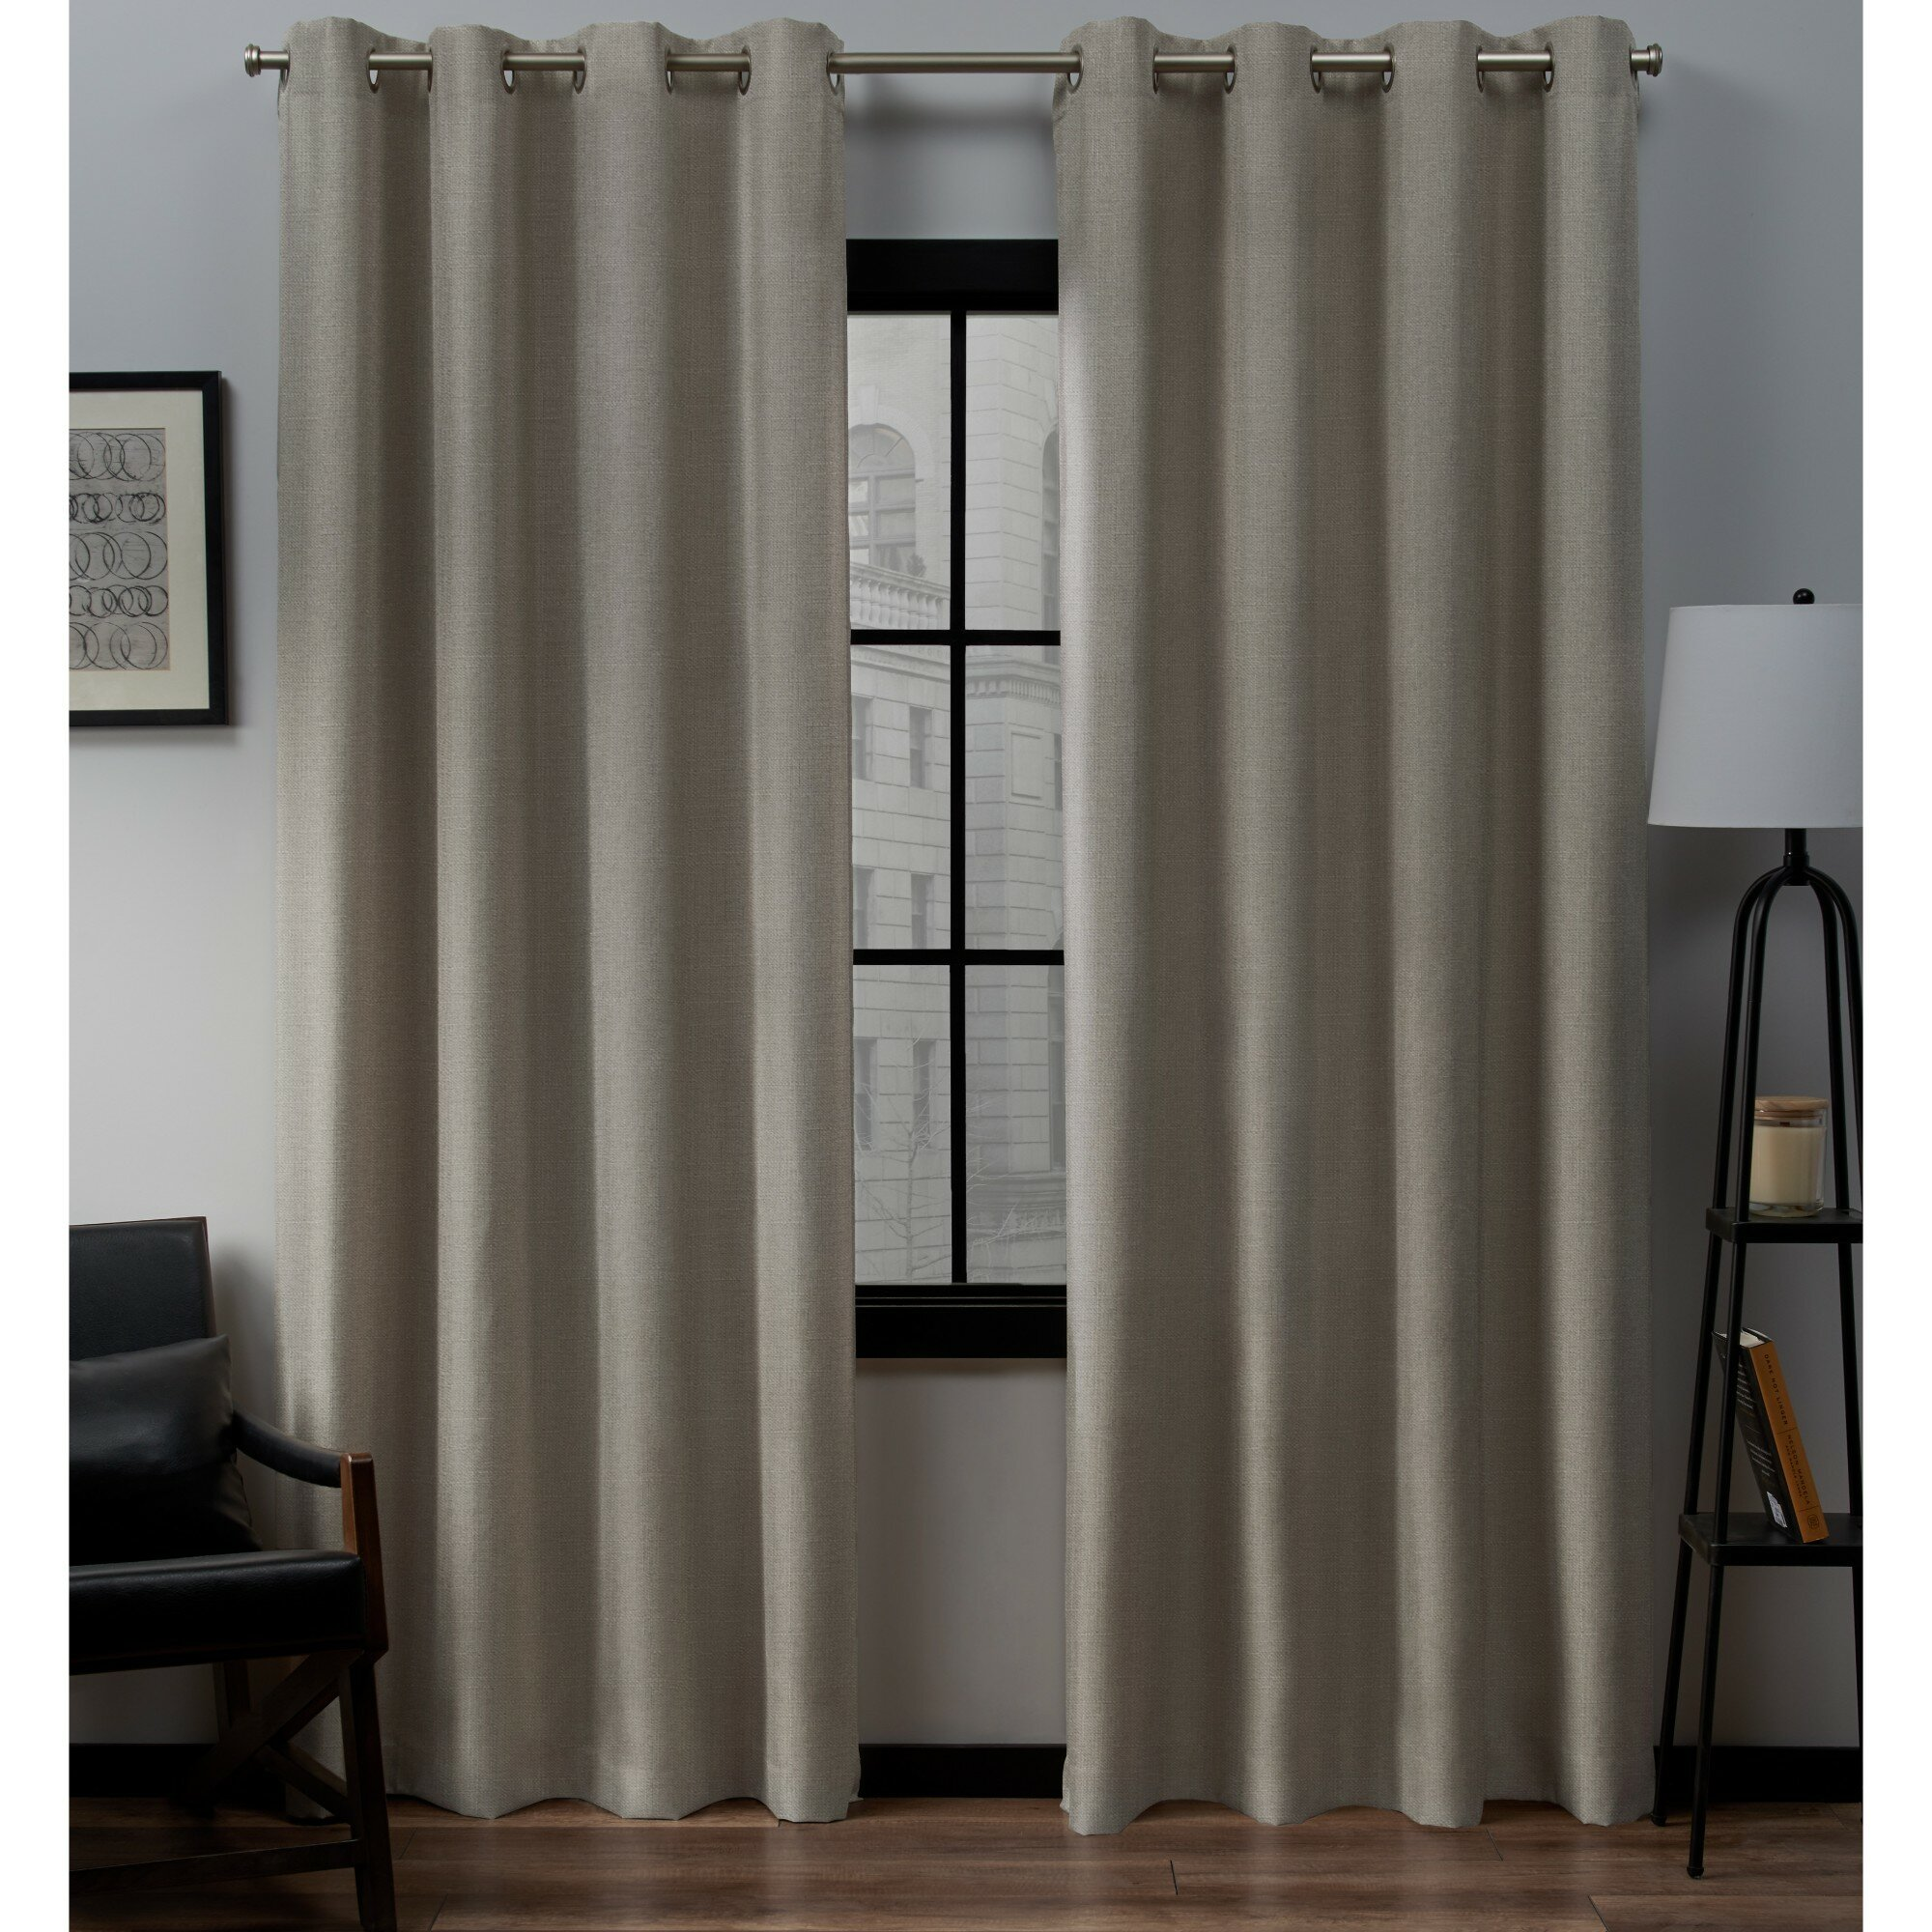 Wayfair Beige Curtains Drapes You Ll Love In 2021